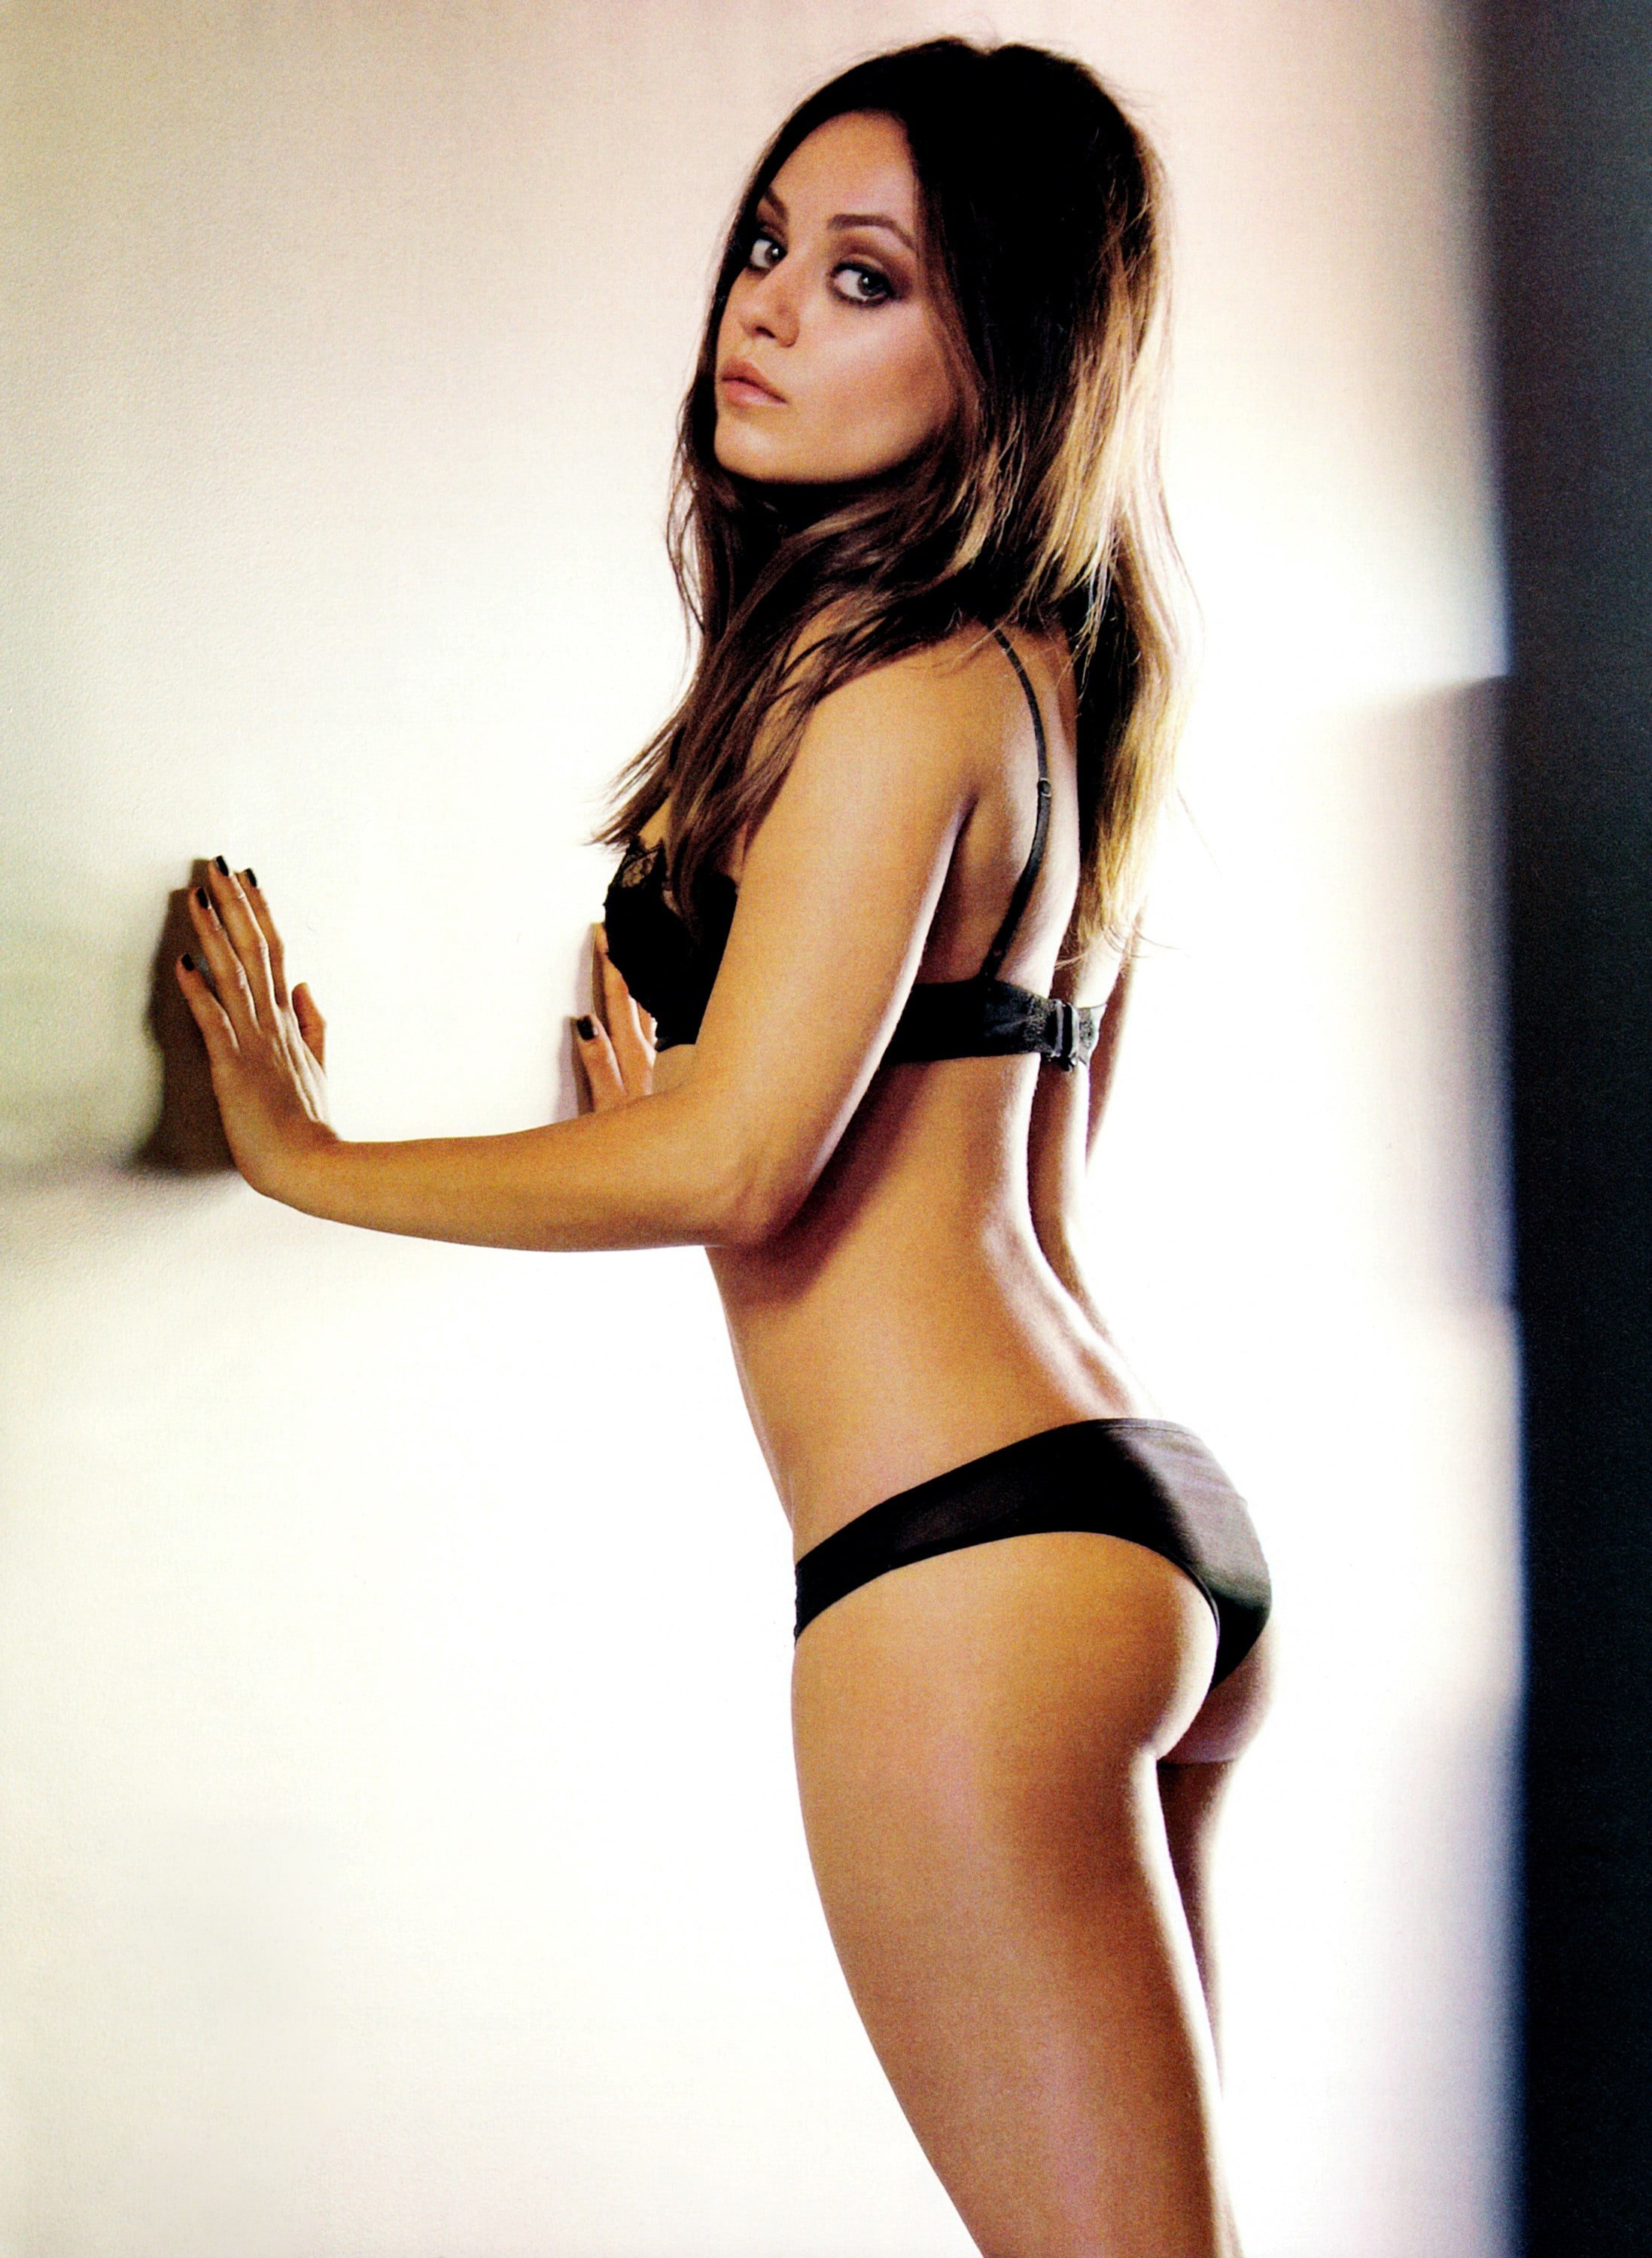 Mila Kunis in black underwear leaning against a wall